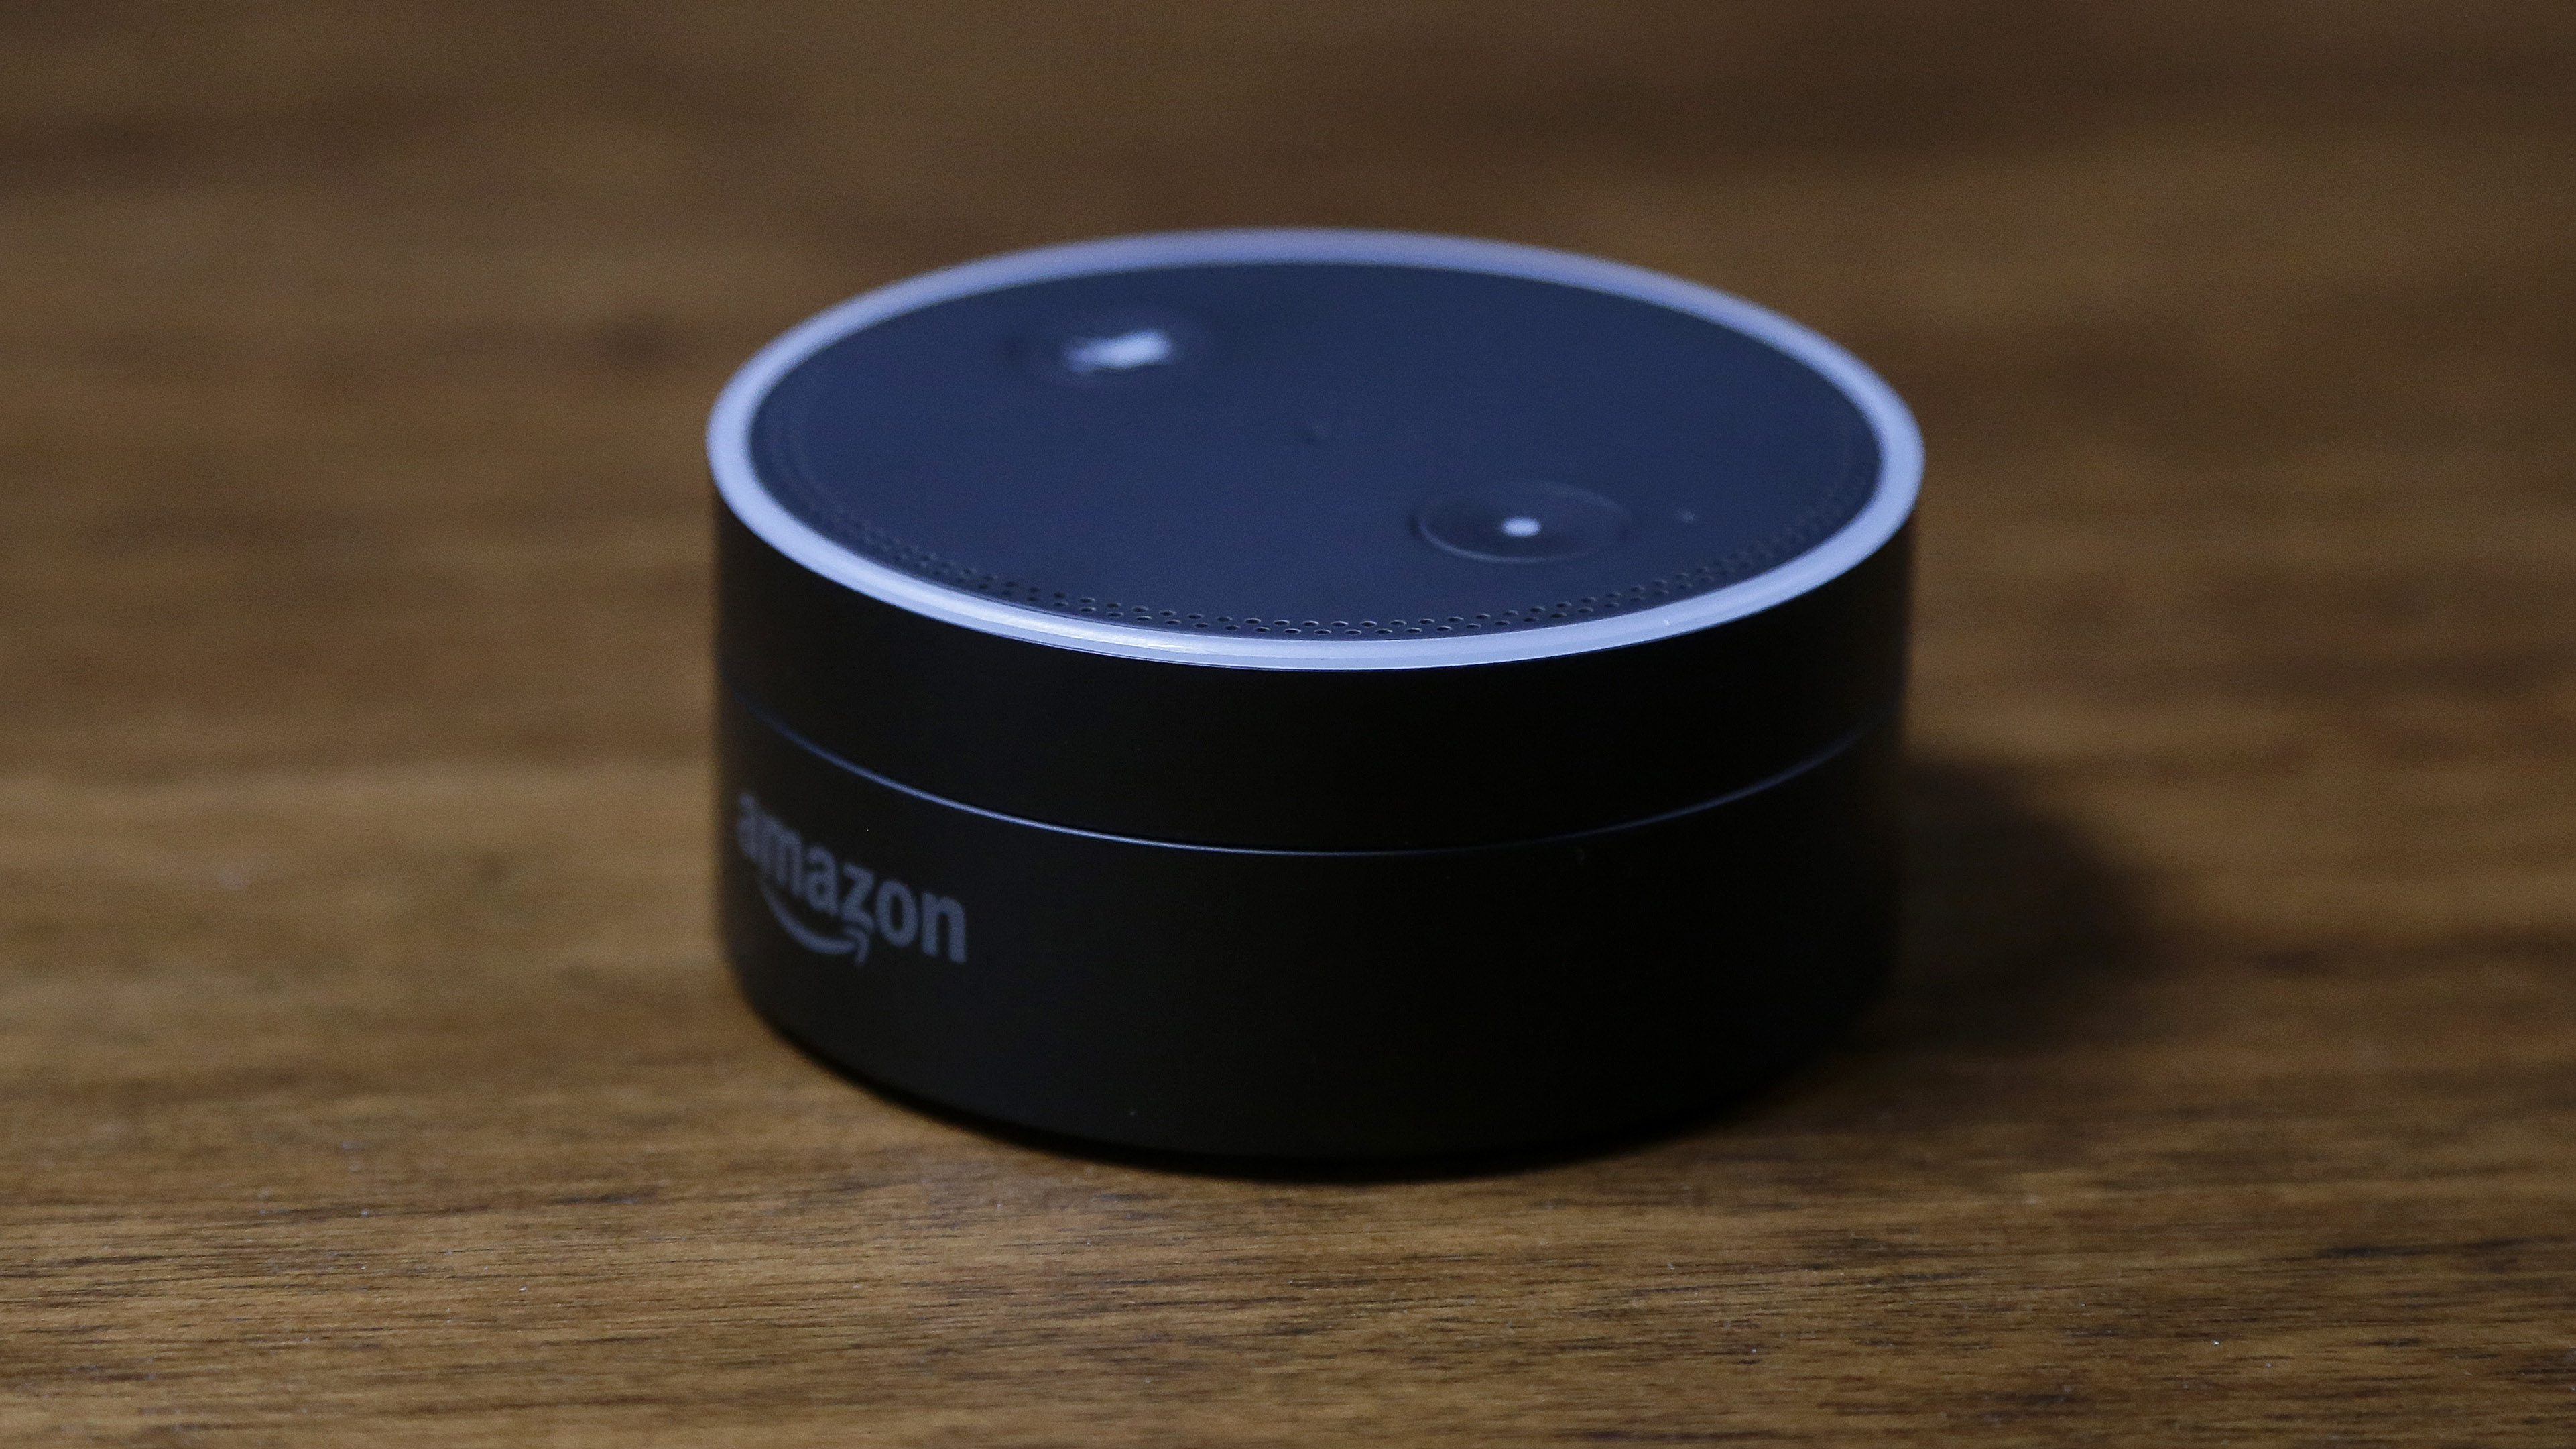 This March 2, 2016 photo shows an Echo Dot in San Francisco. Amazon.com is introducing two devices, the Amazon Tap and Echo Dot, that are designed to amplify the role that its voice-controlled assistant Alexa plays in people's homes and lives. (AP Photo/Jeff Chiu)